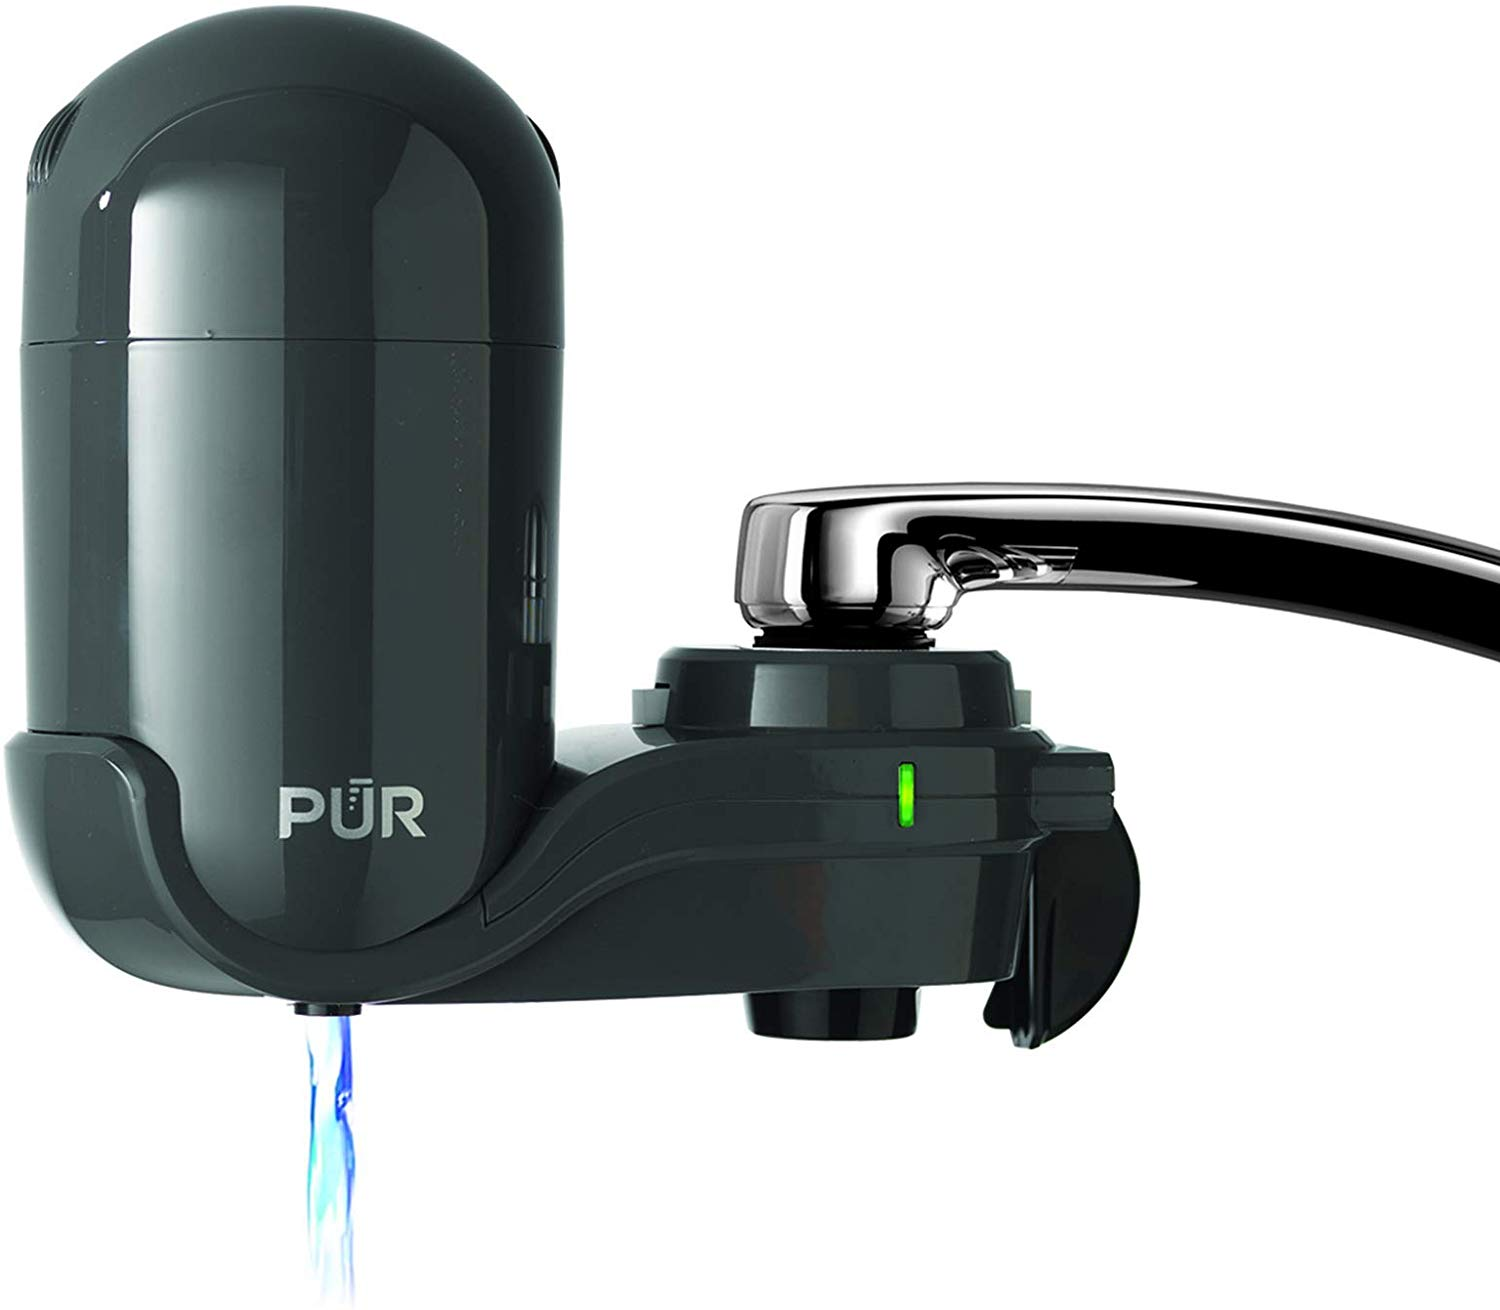 PUR Classic Faucet Mount Filter